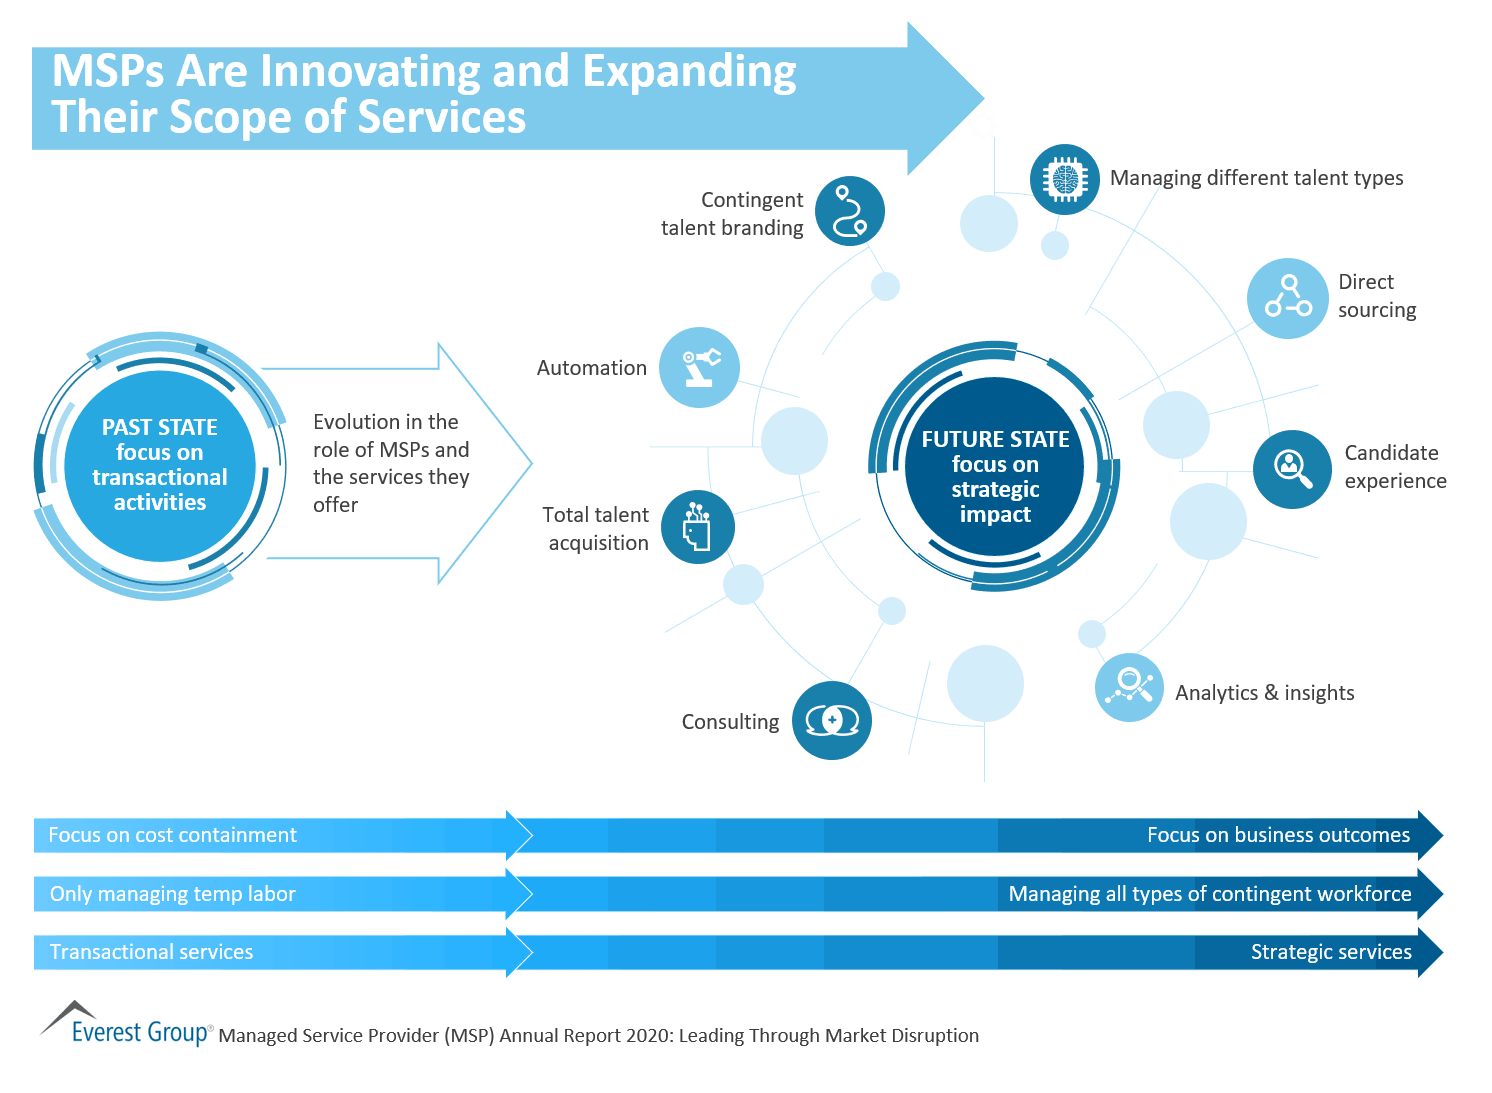 MSPs Are Innovating and Expanding Their Scope of Services